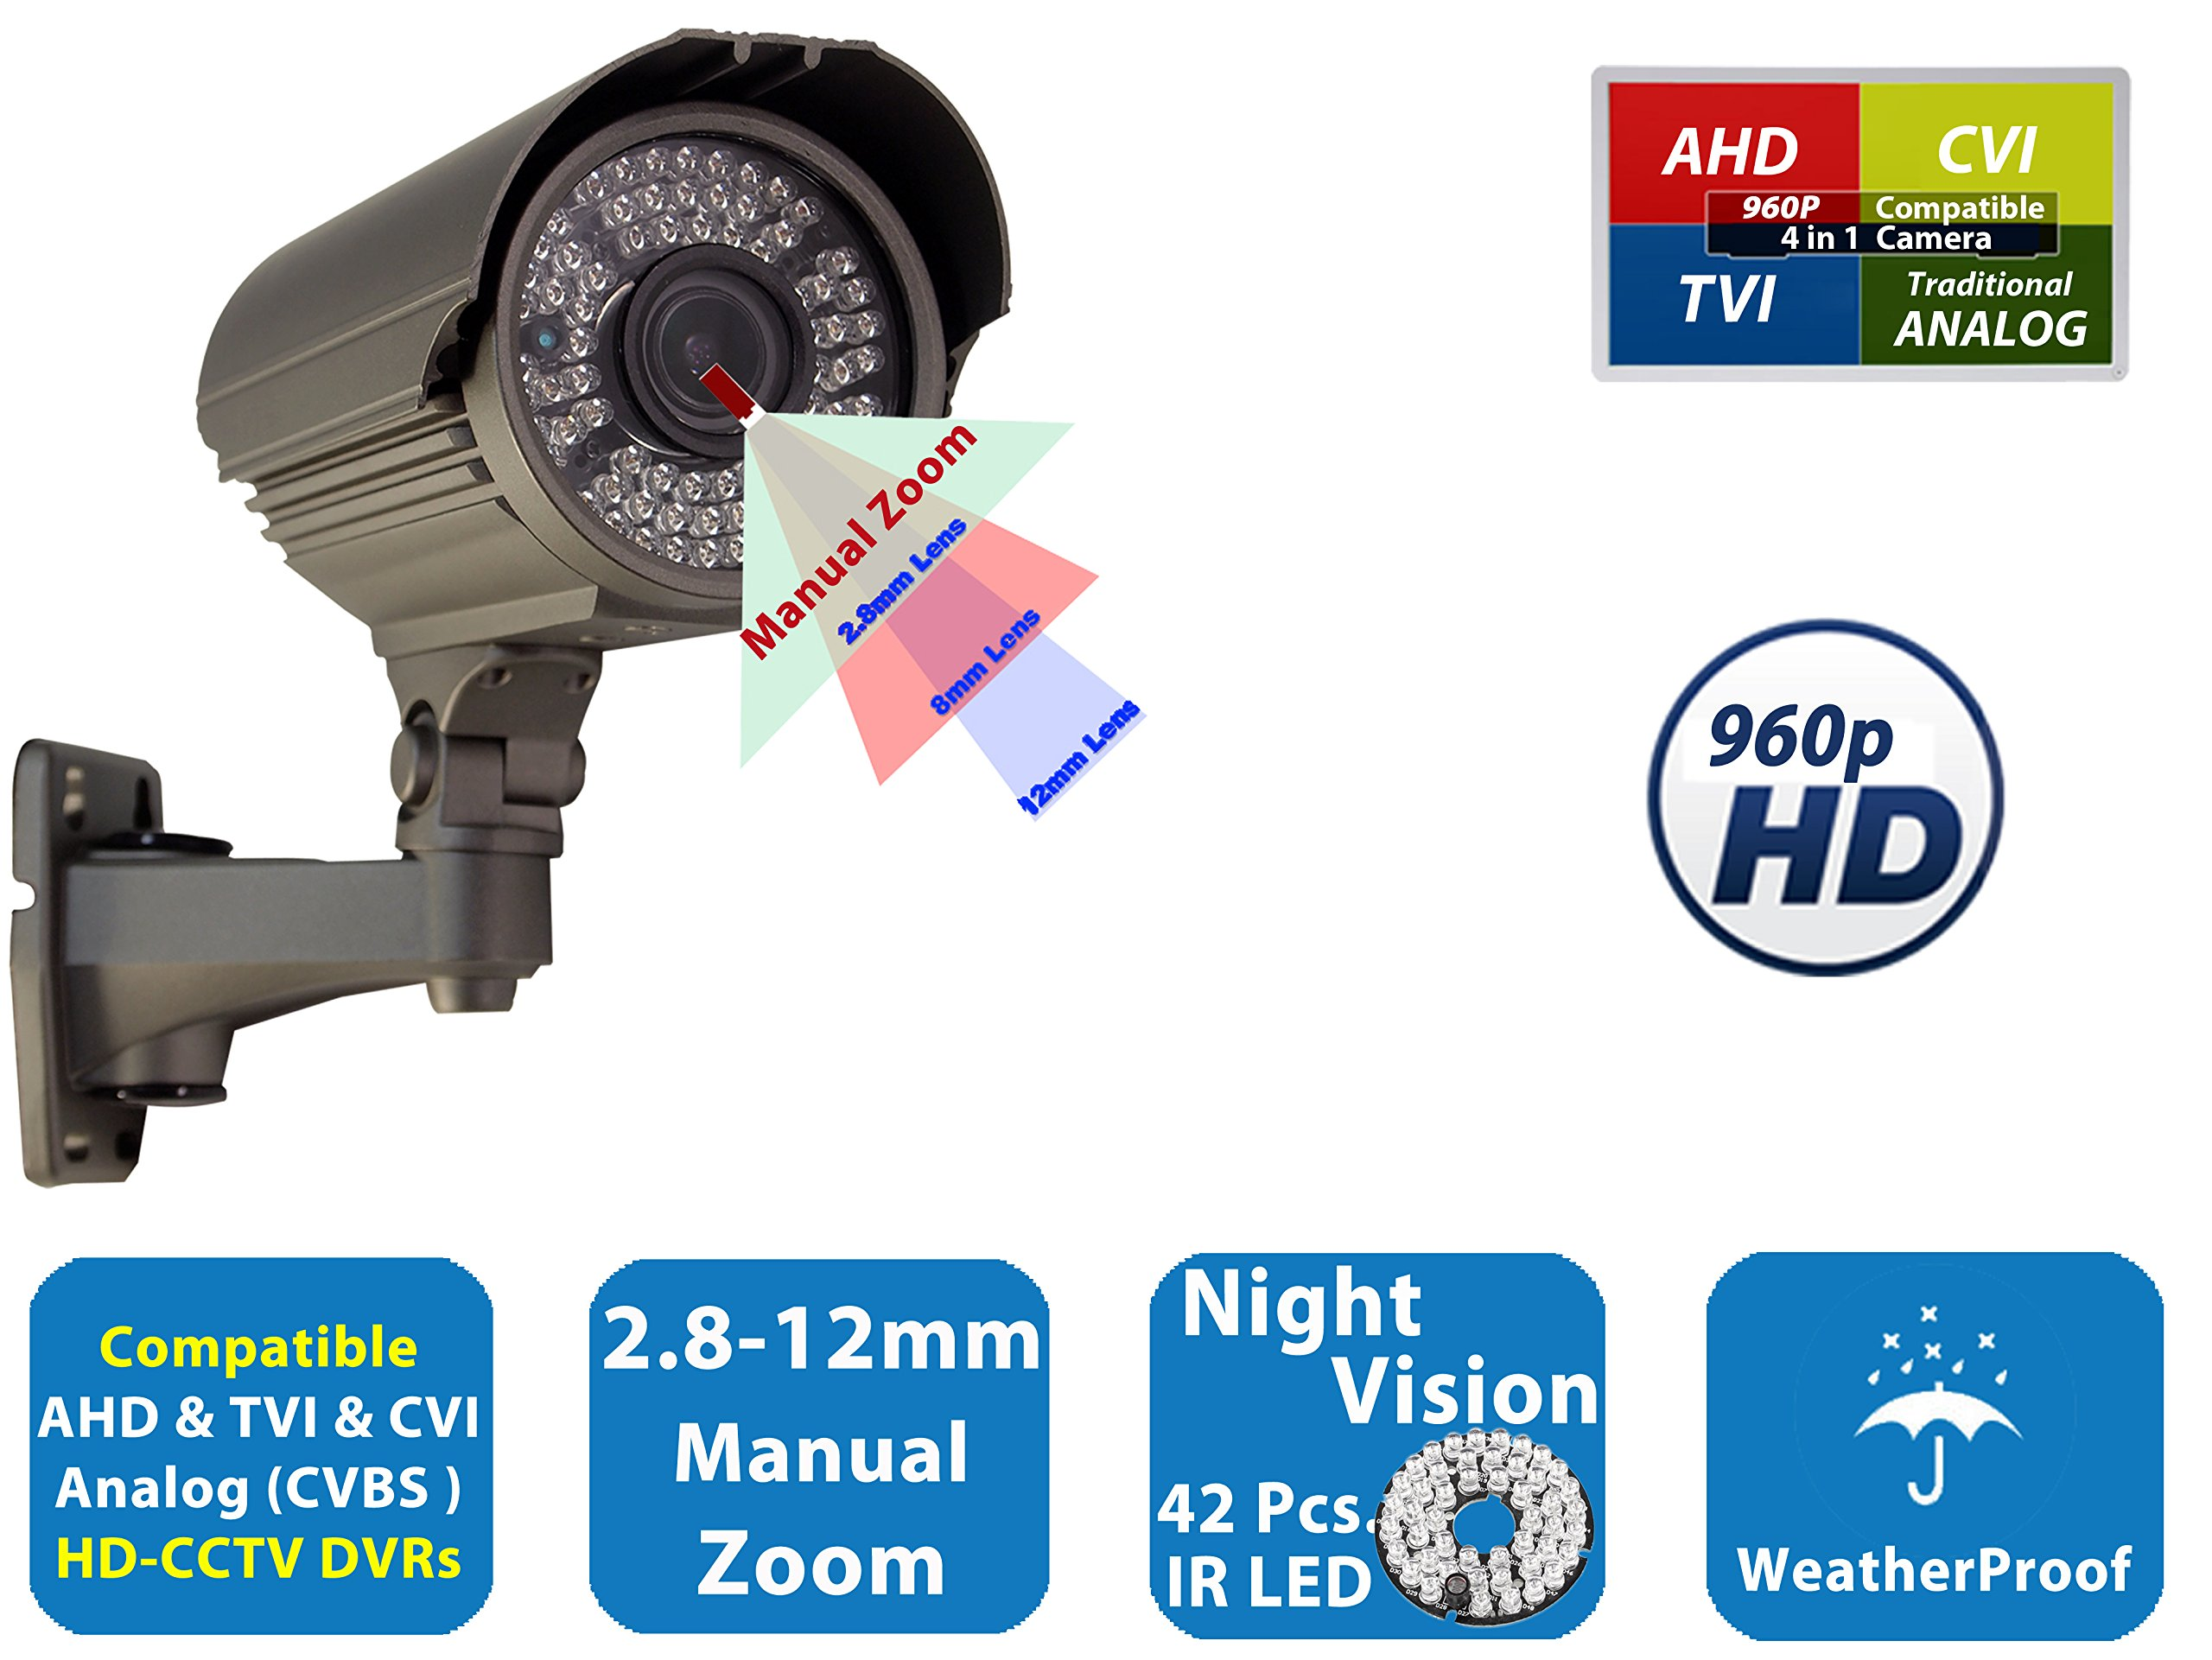 Evertech HD TVI CVI AHD Security Camera 1200TVL SONY Cmos Sensor Outdoor Indoor Weatherproof Night Vision 2.8-12mm Varifocal Lens Bullet CCTV for Security Surveillance Systems with 42 IR Led